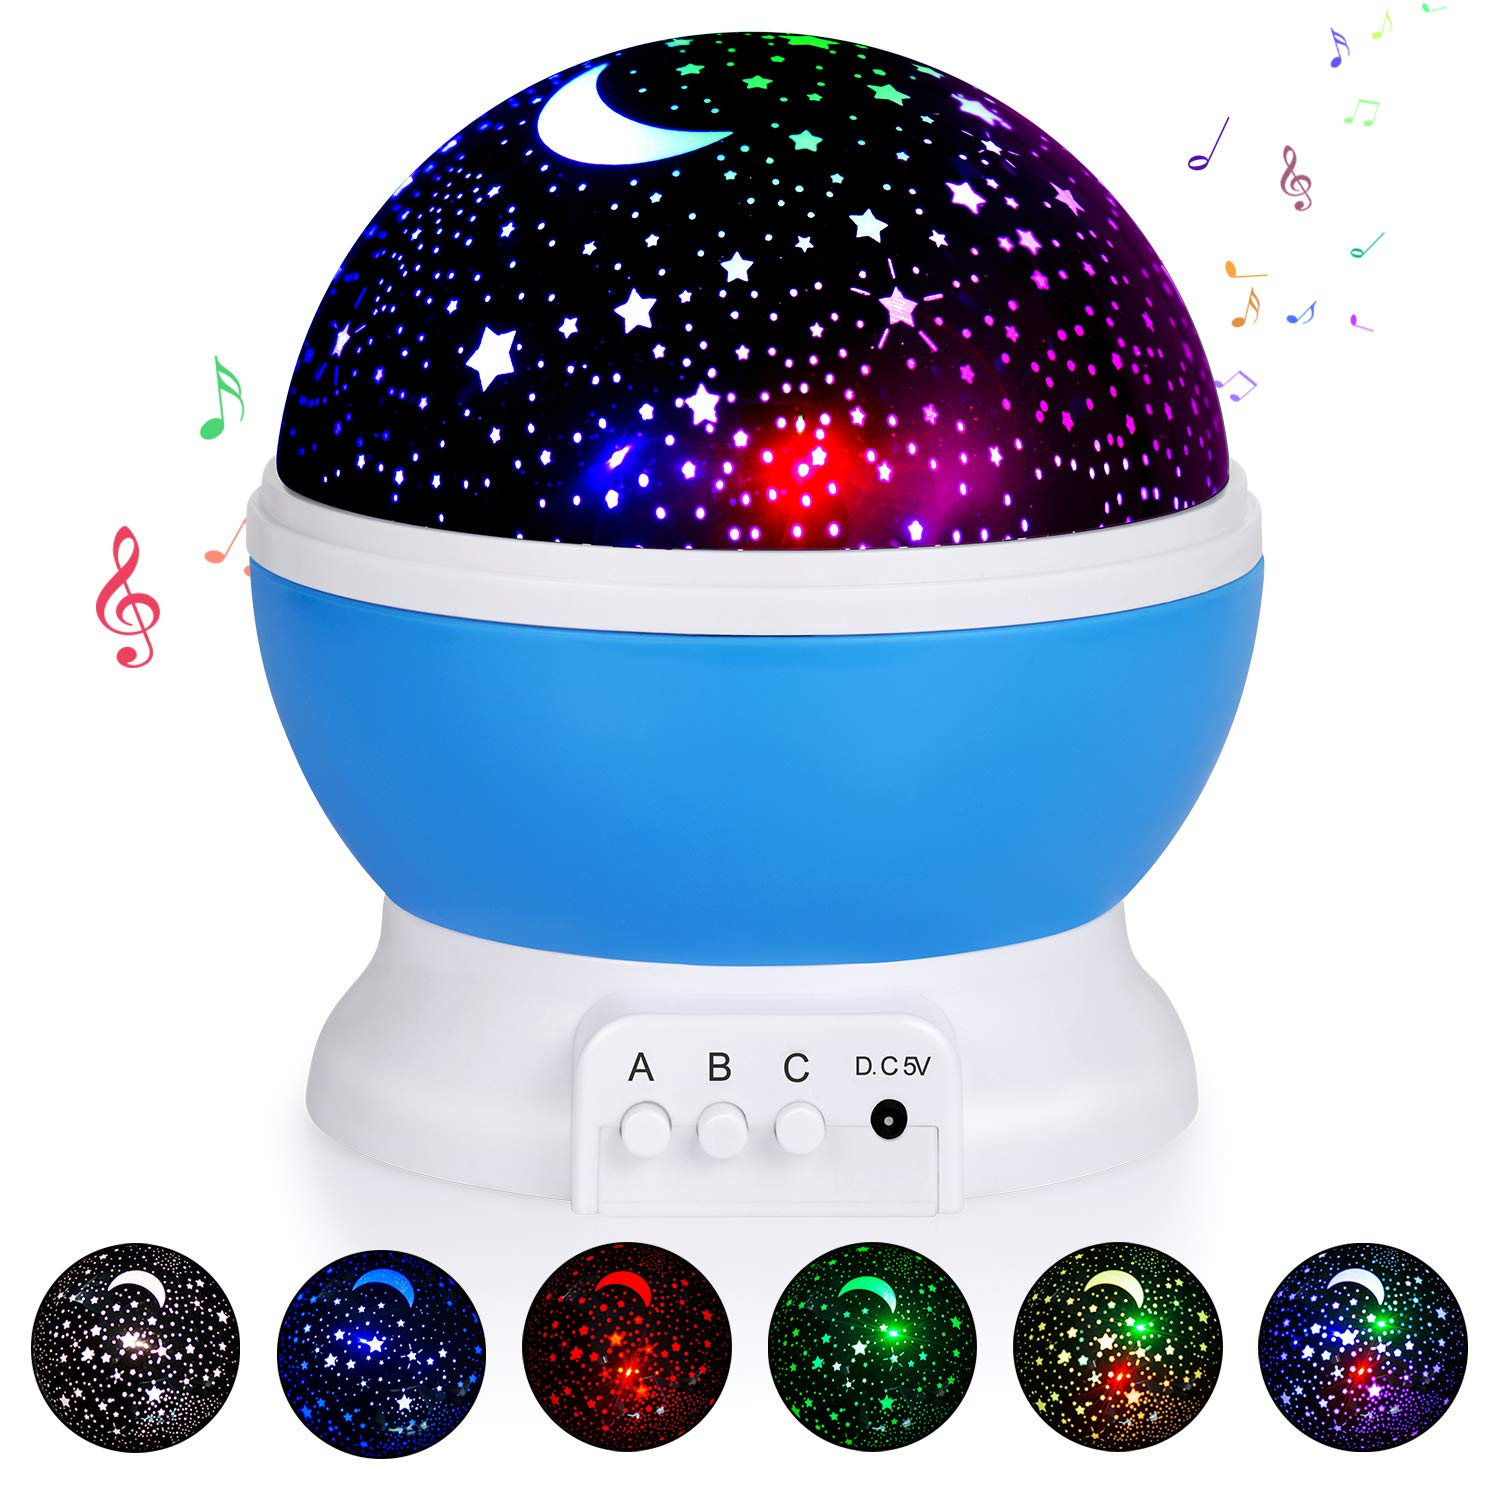 Kids Star Night Light, 360-Degree Rotating Star Projector, Desk Lamp 4 LEDs 8 Colors Changing with USB Cable and Battery, Best for Children Baby Bedroom, Unique Gift for Birthday night light Night Light Review – 3 affordable night lights on Amazon 71ZmcpDuZiL